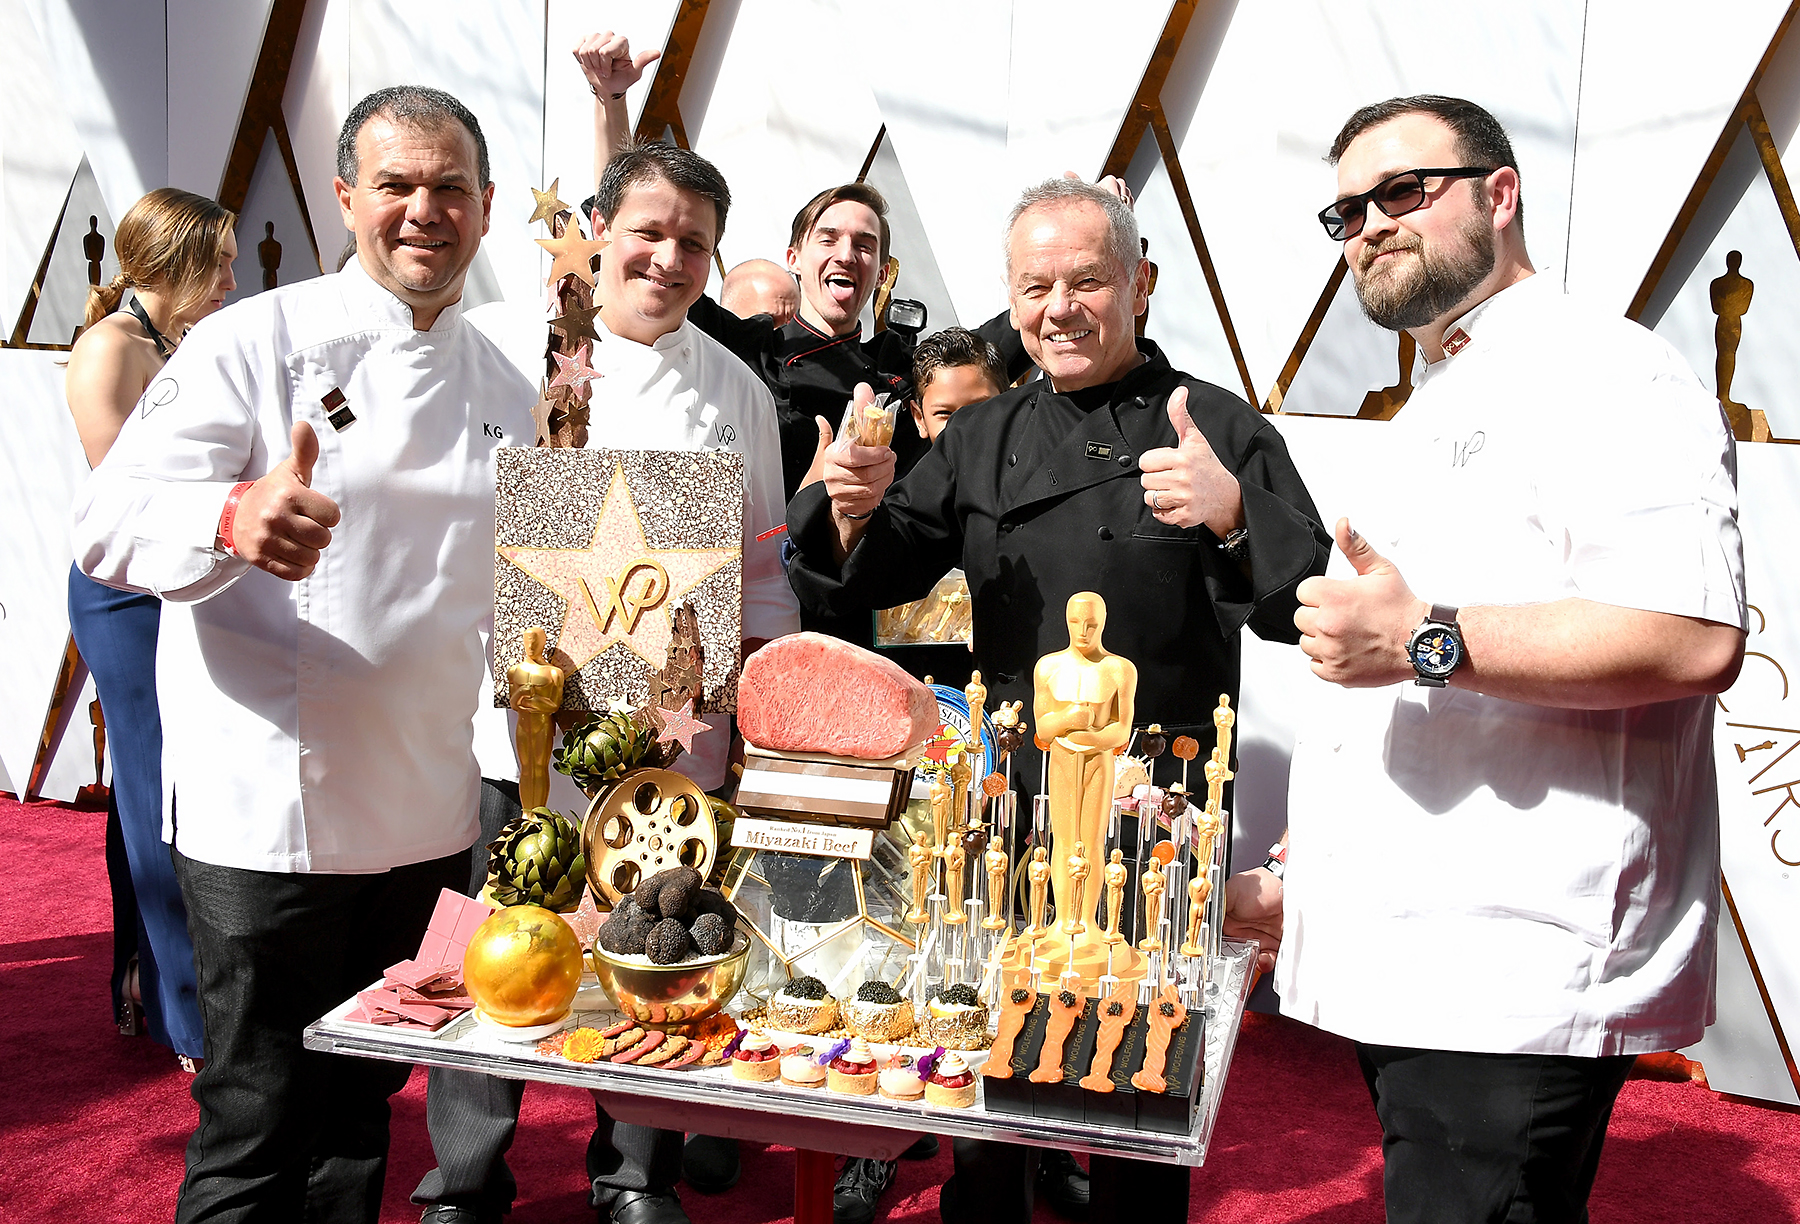 Chef Wolfgang Puck Dishes About Oscars 2018 Menu